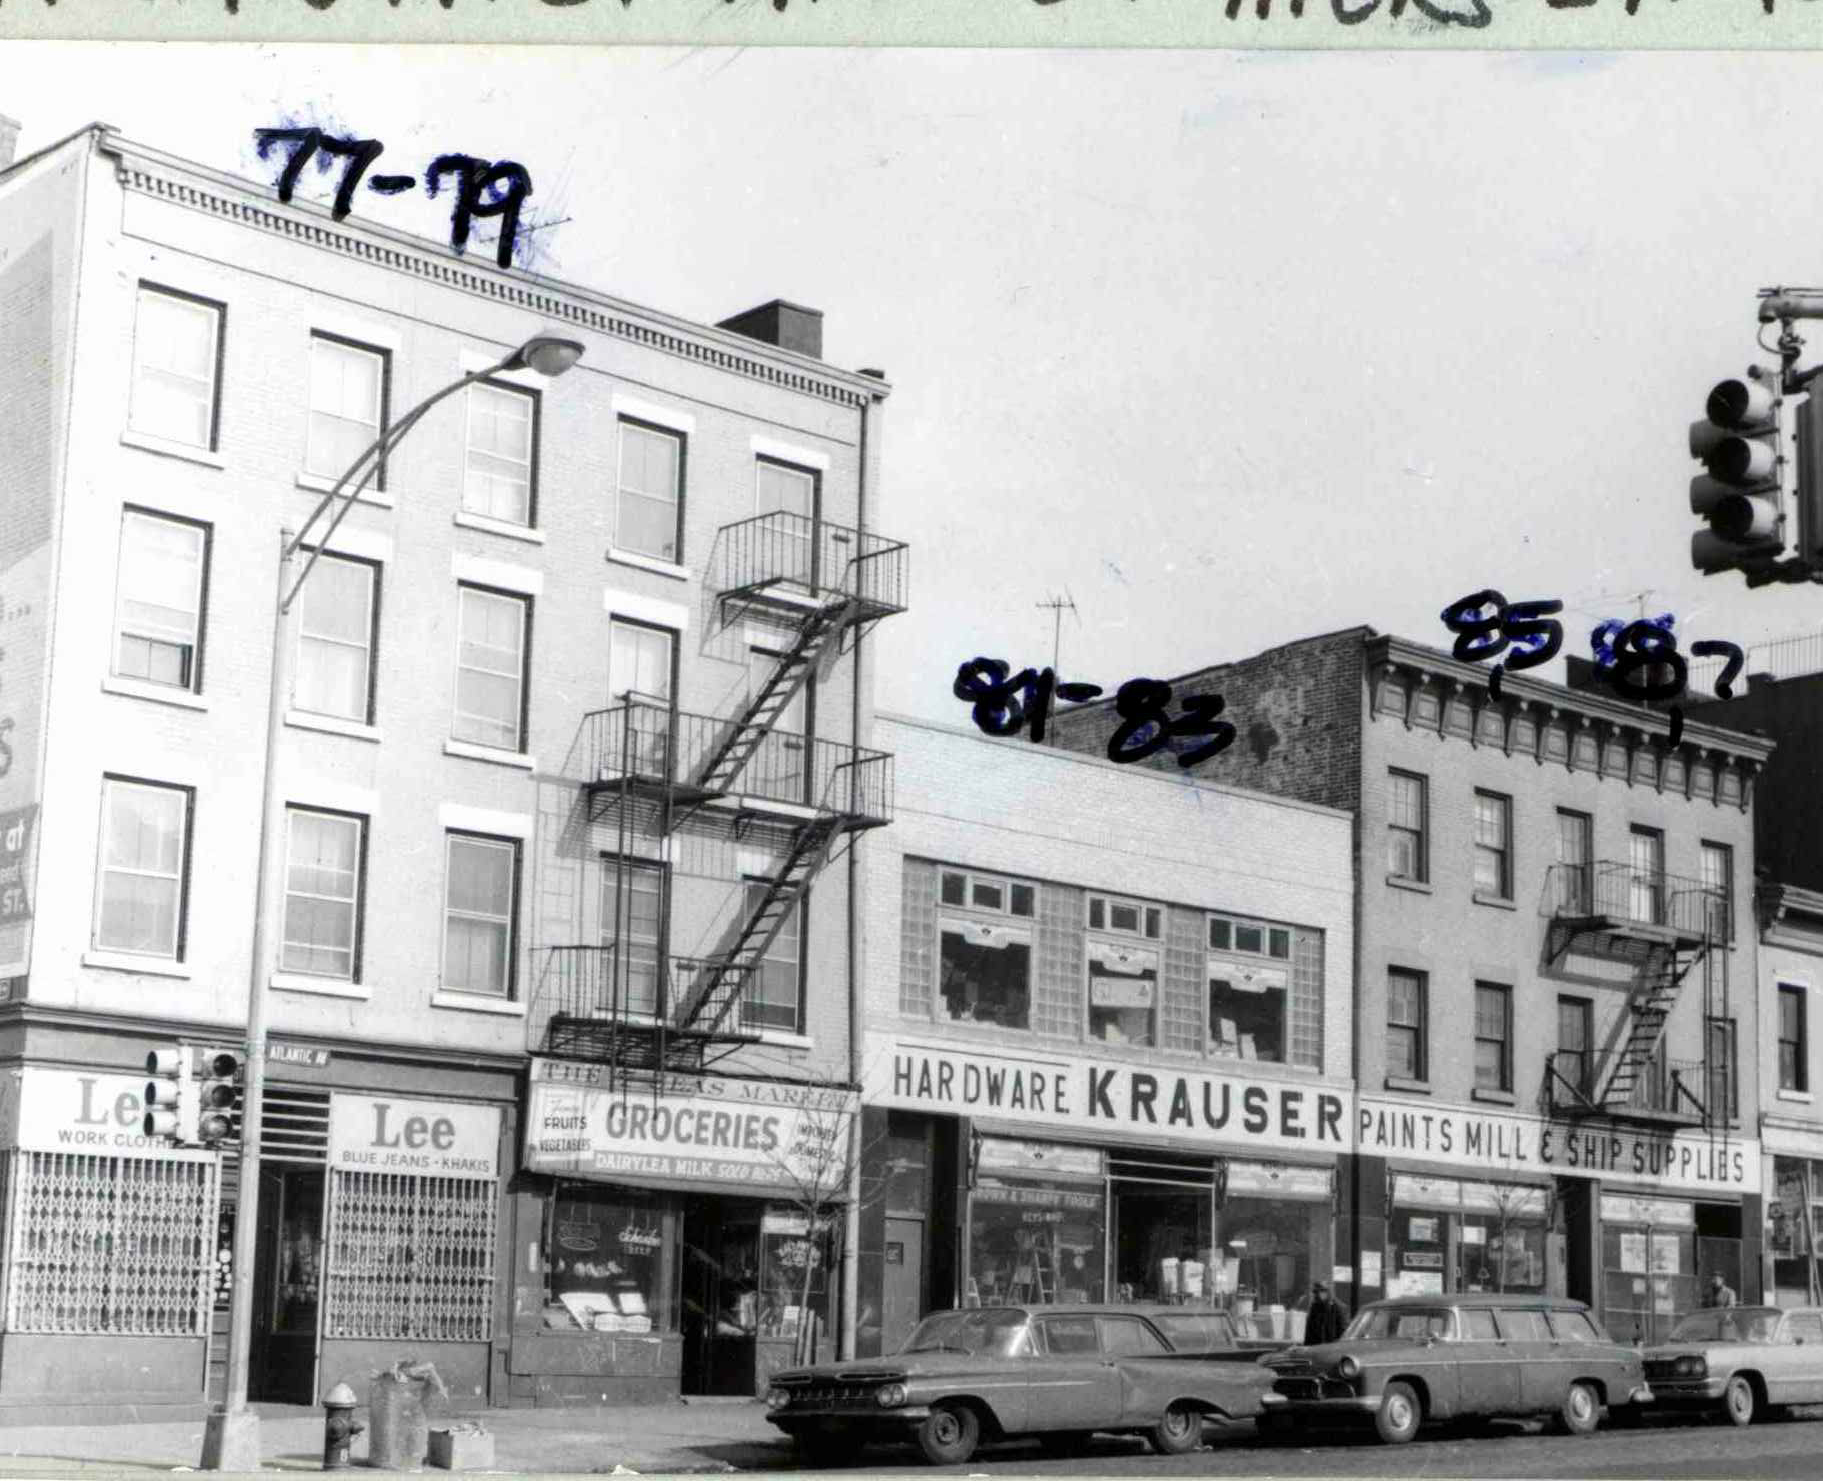 81 Atlantic Avenue, at the time of the district's designation